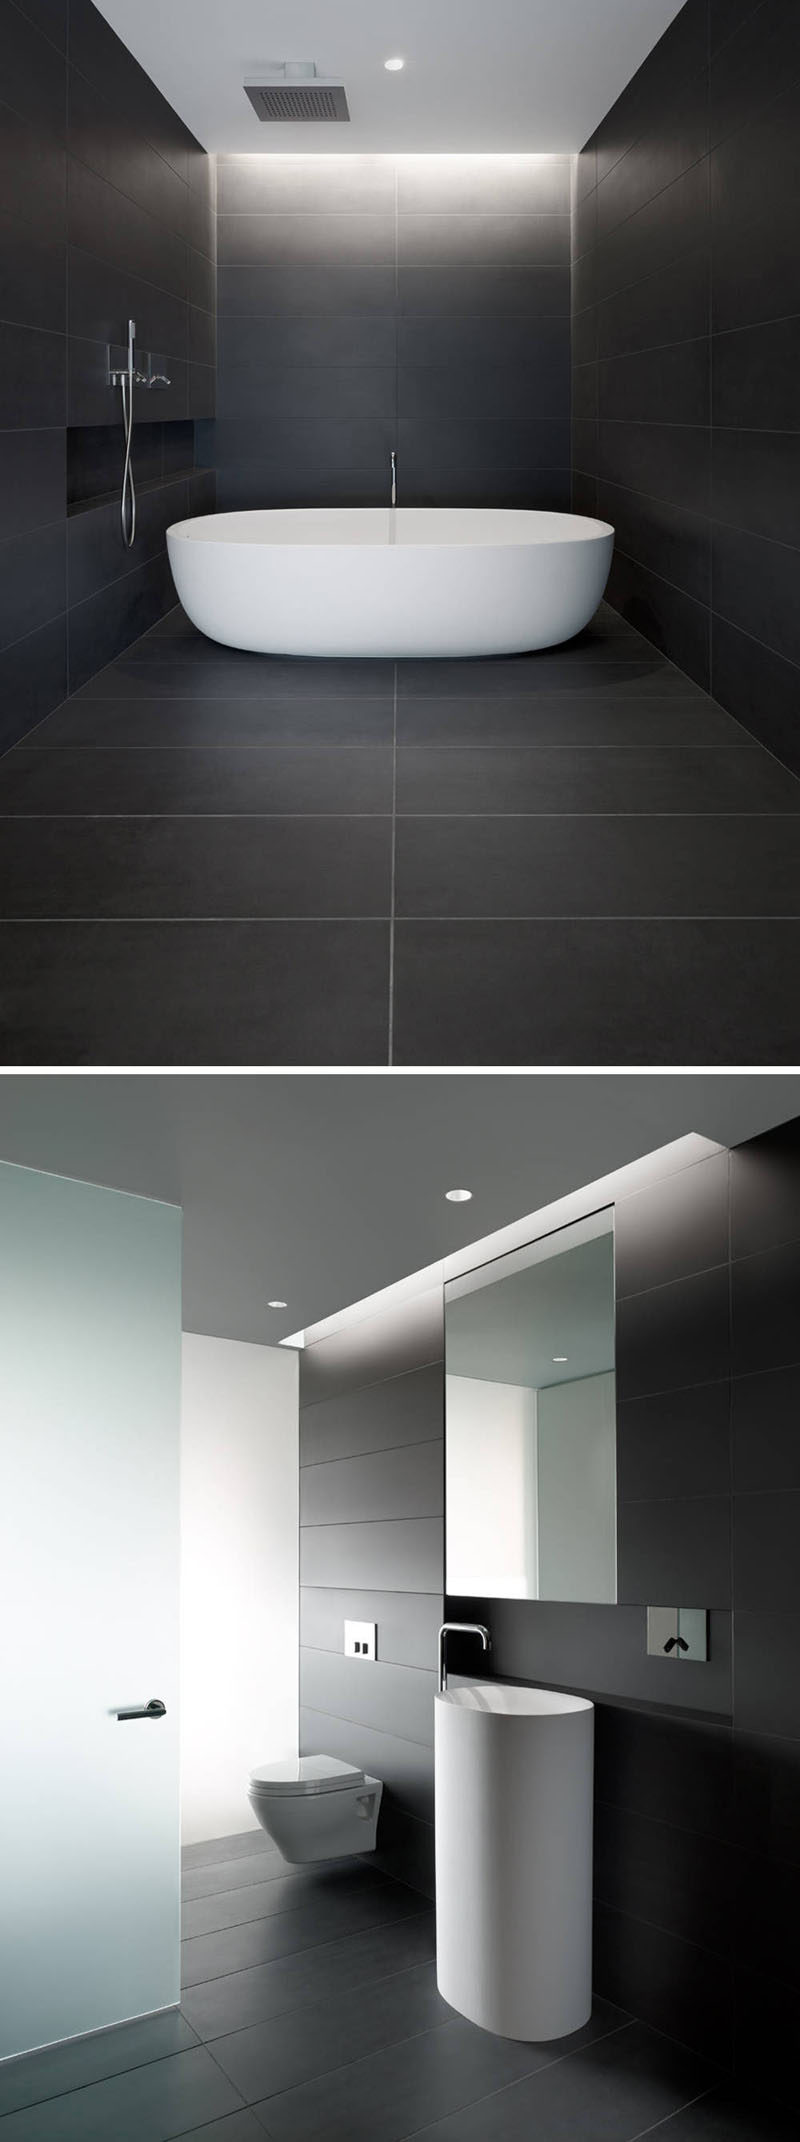 bathroom tile ideas use large tiles on the floor and walls large dark